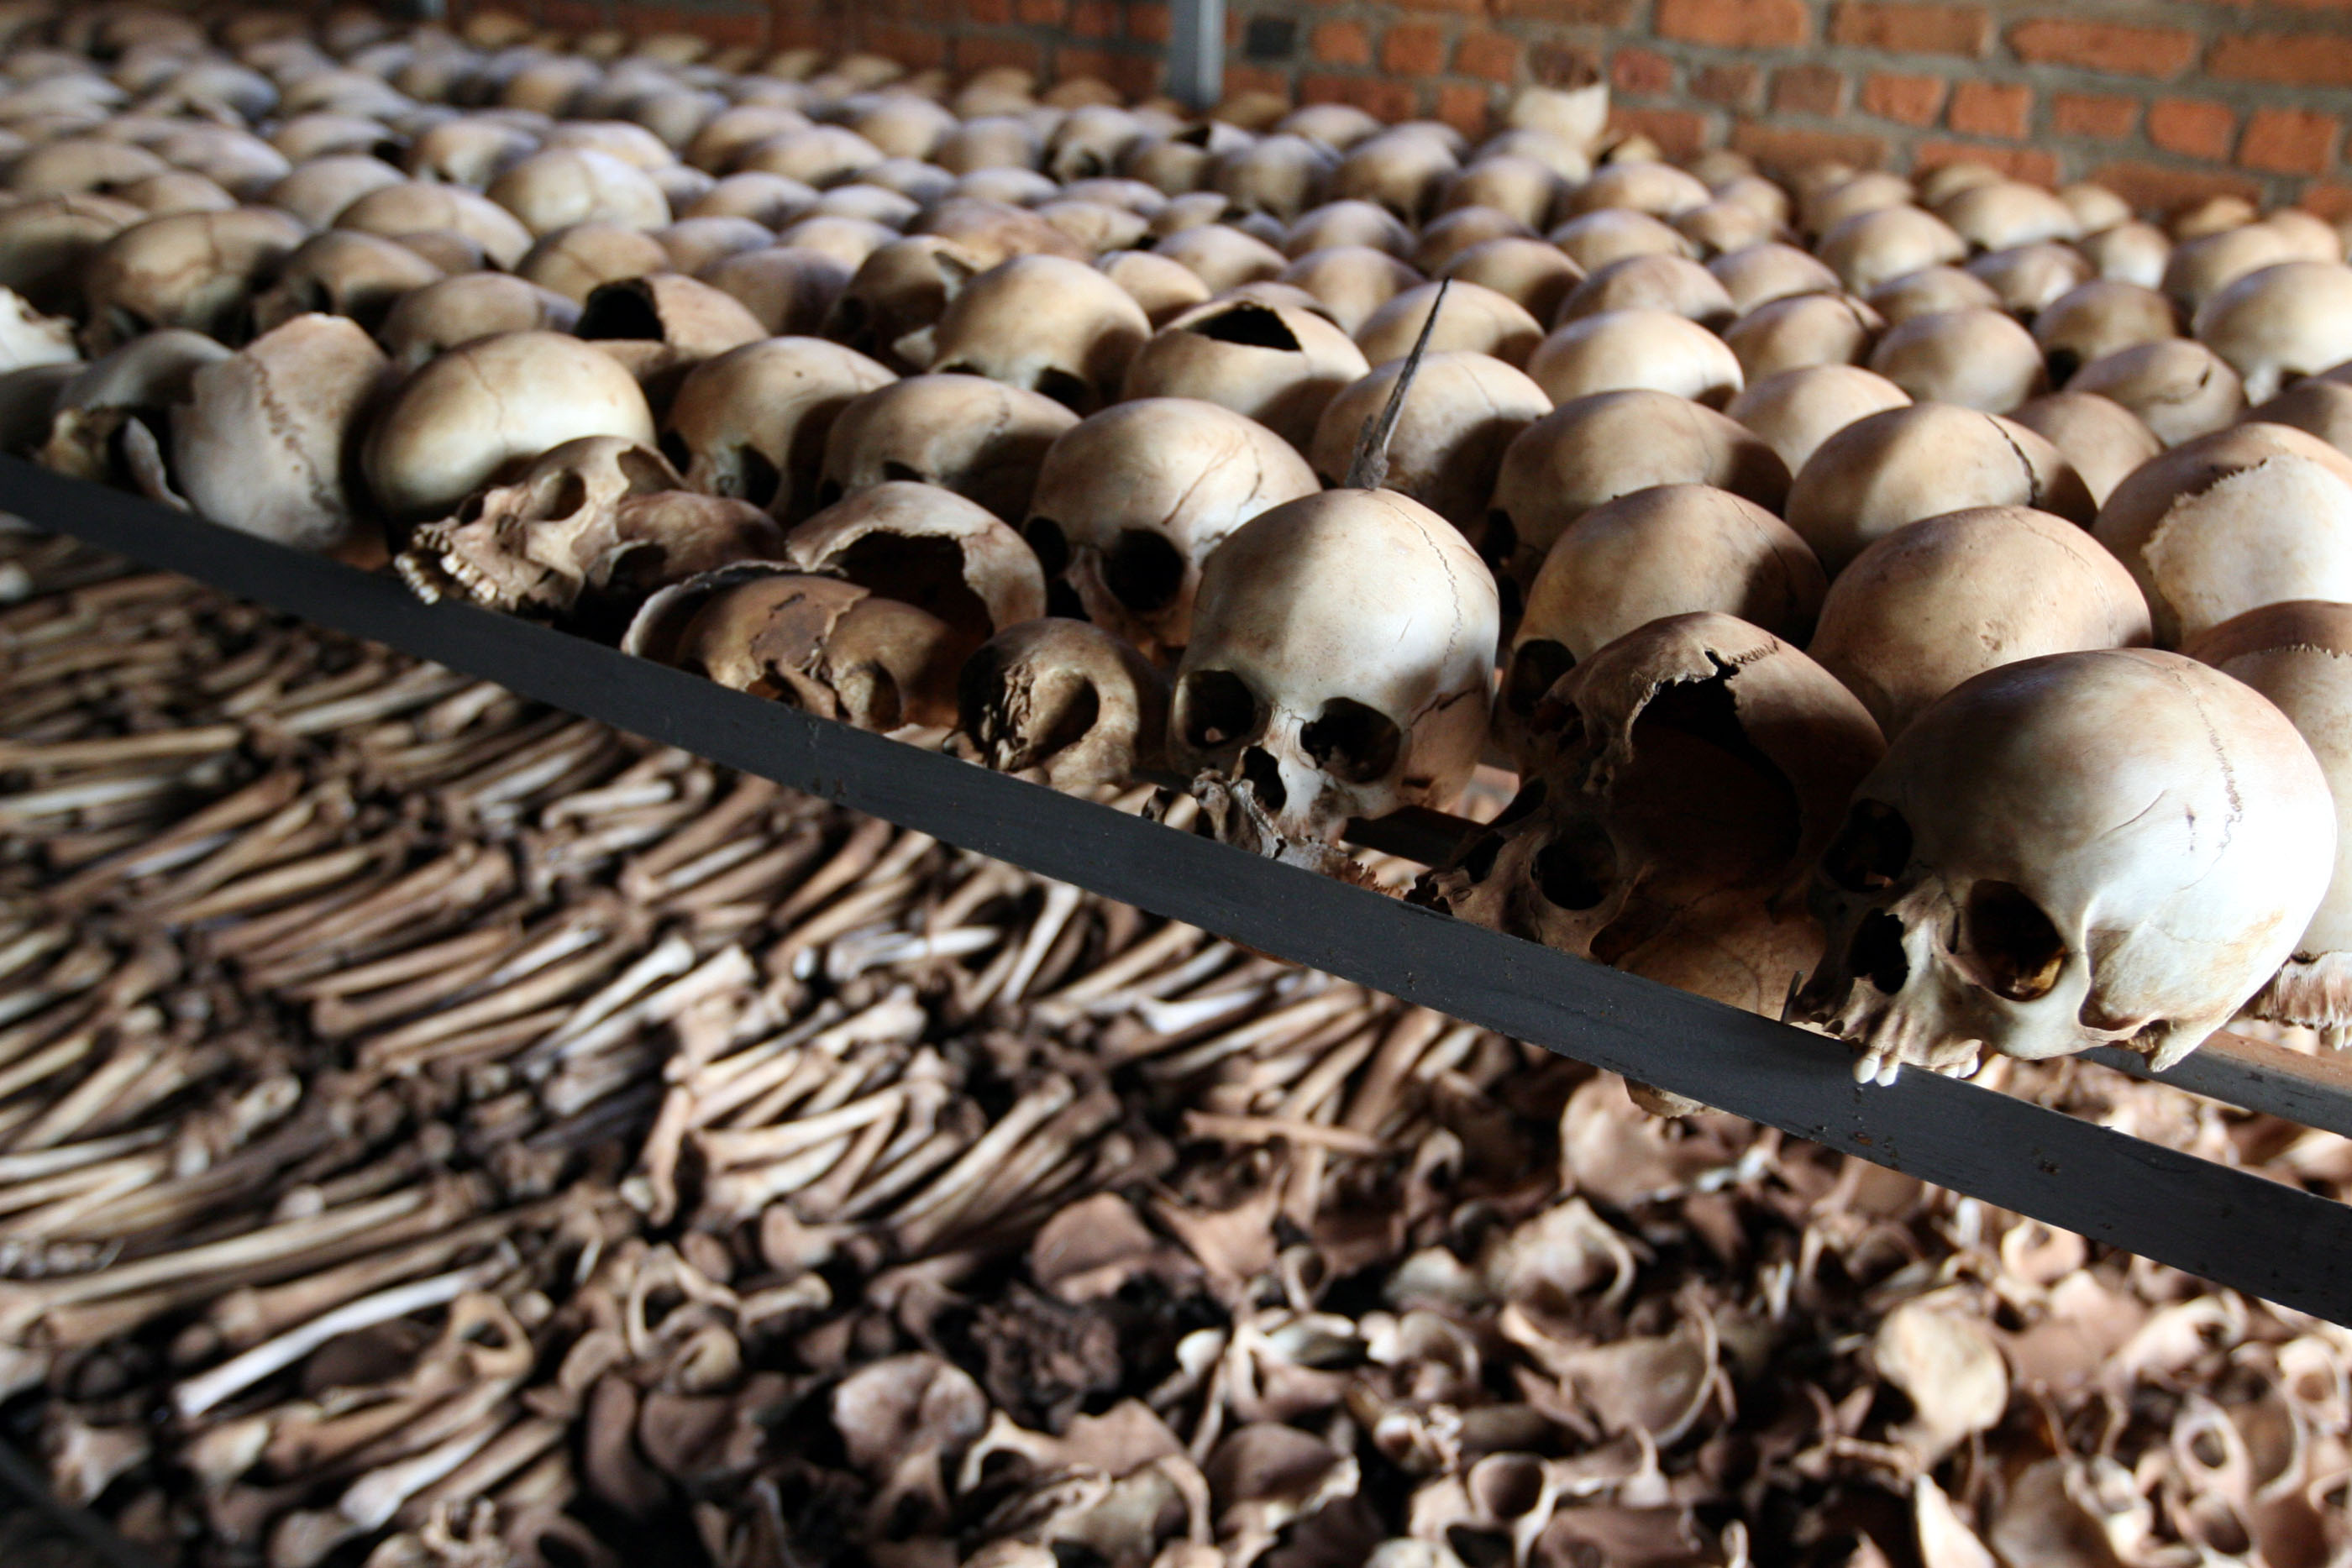 Bones of victims at a memorial to the Rwandan genocide. By DFID.